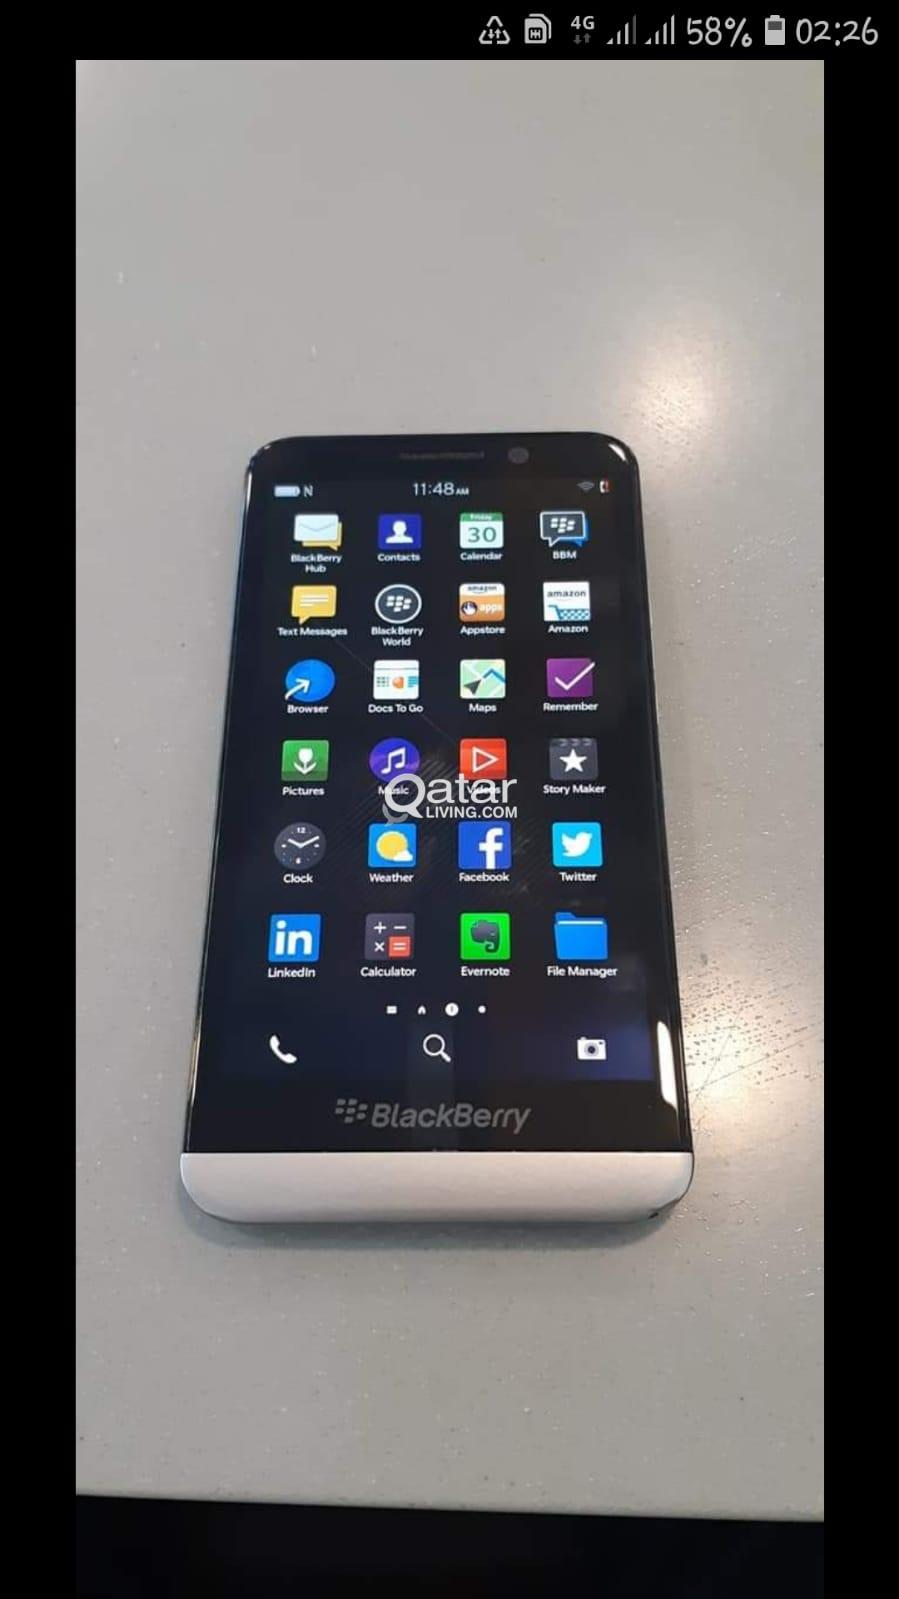 BLACKBERRY Z30 | Qatar Living